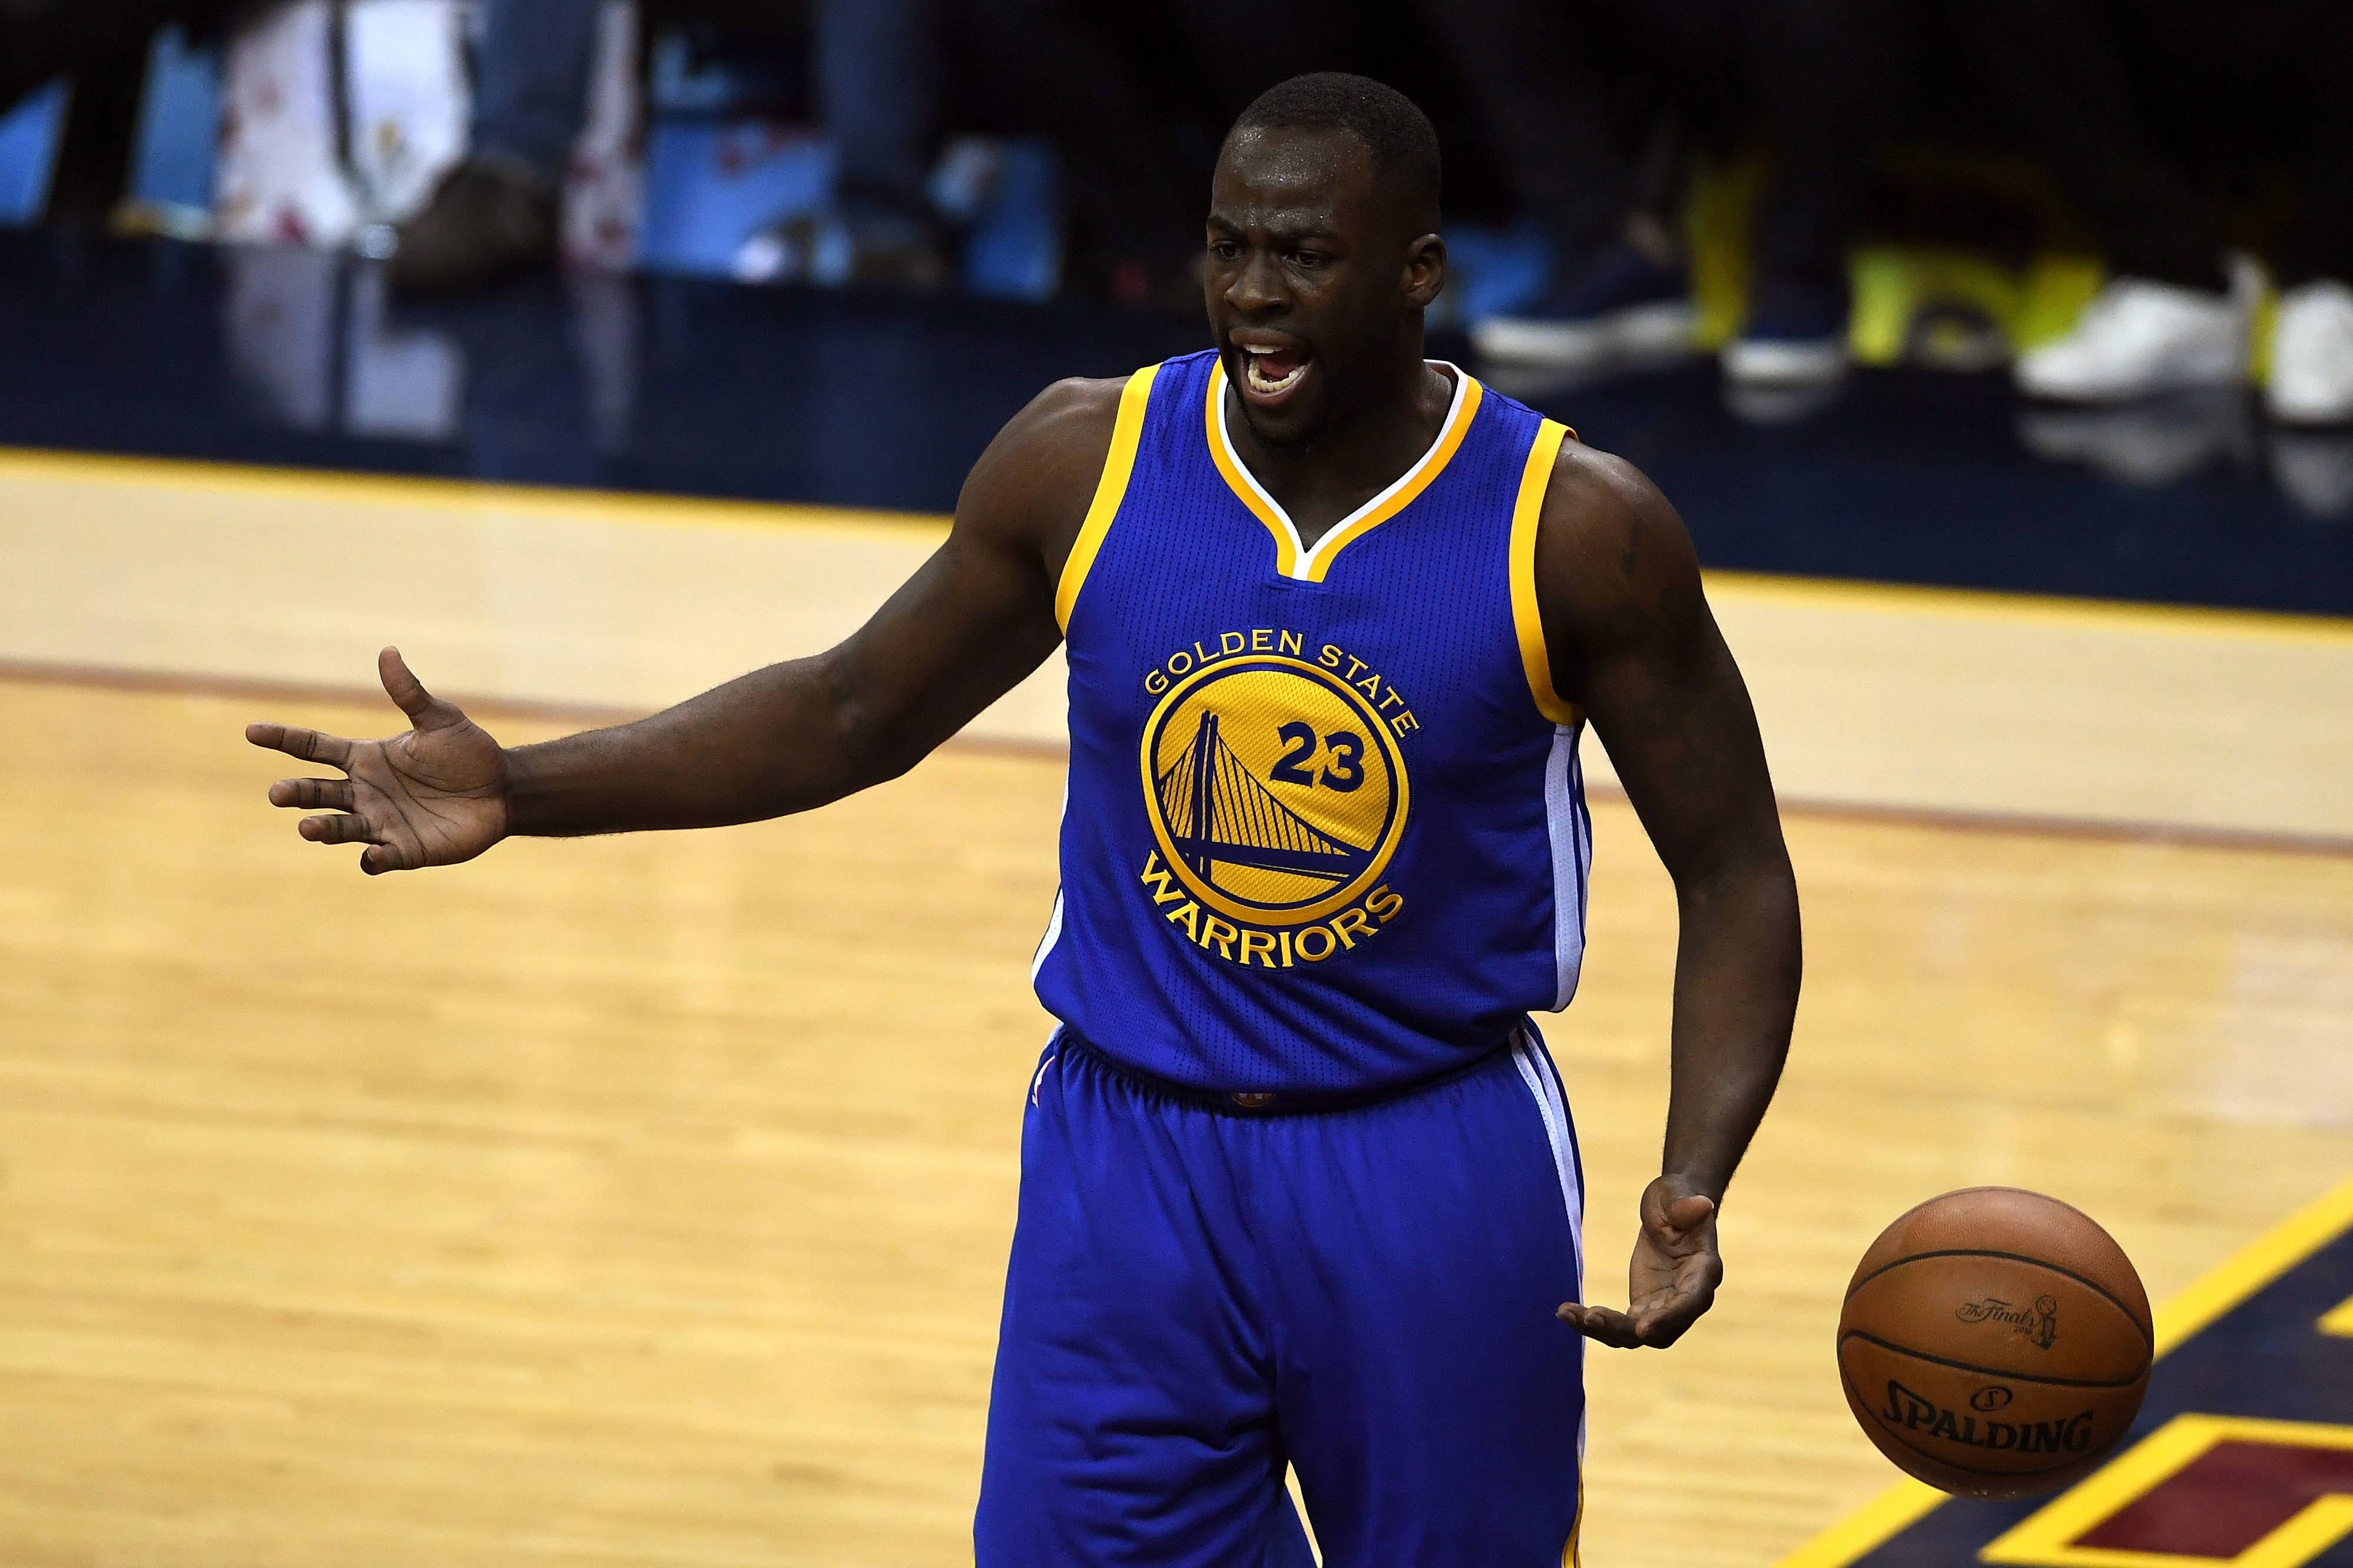 FILE - JULY 11, 2016: It was reported that Golden State Warriors forward Draymond Green was arrested for assault in East Lansing, Michigan July 11, 2016 CLEVELAND, OH - JUNE 16: Draymond Green #23 of the Golden State Warriors reacts to a call in the first